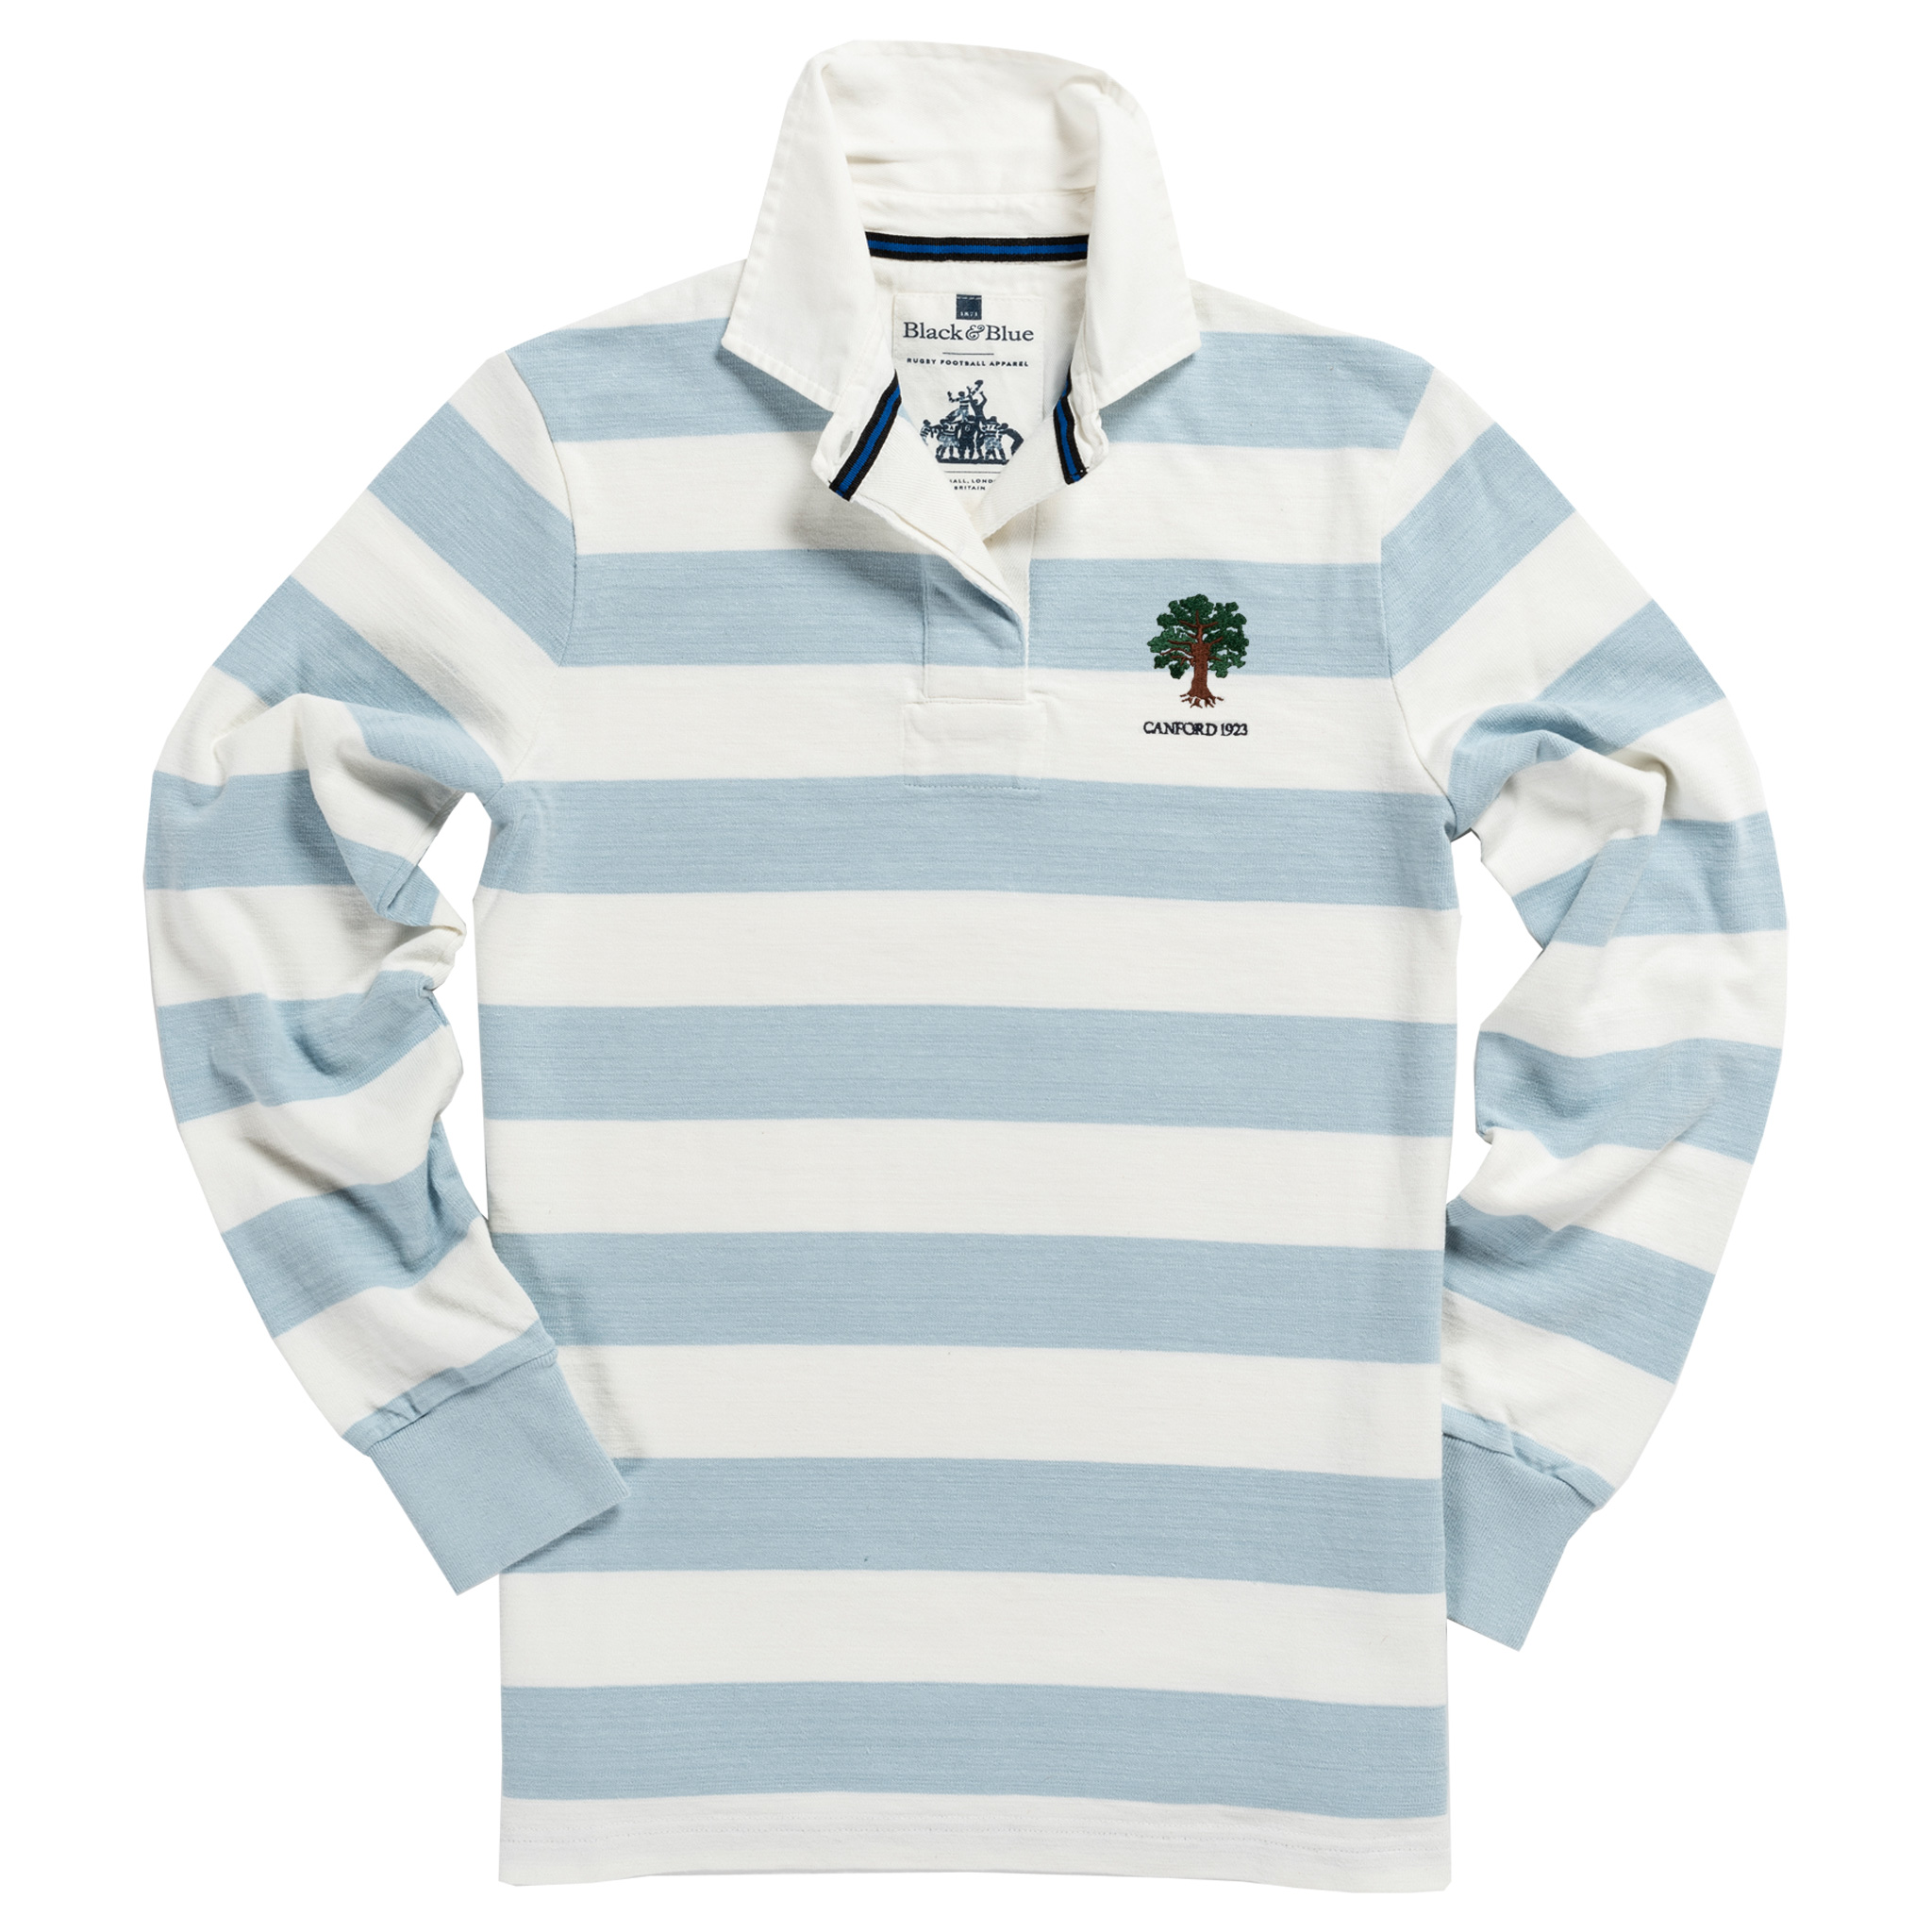 Canford School 1923 Vintage Women's Rugby Shirt